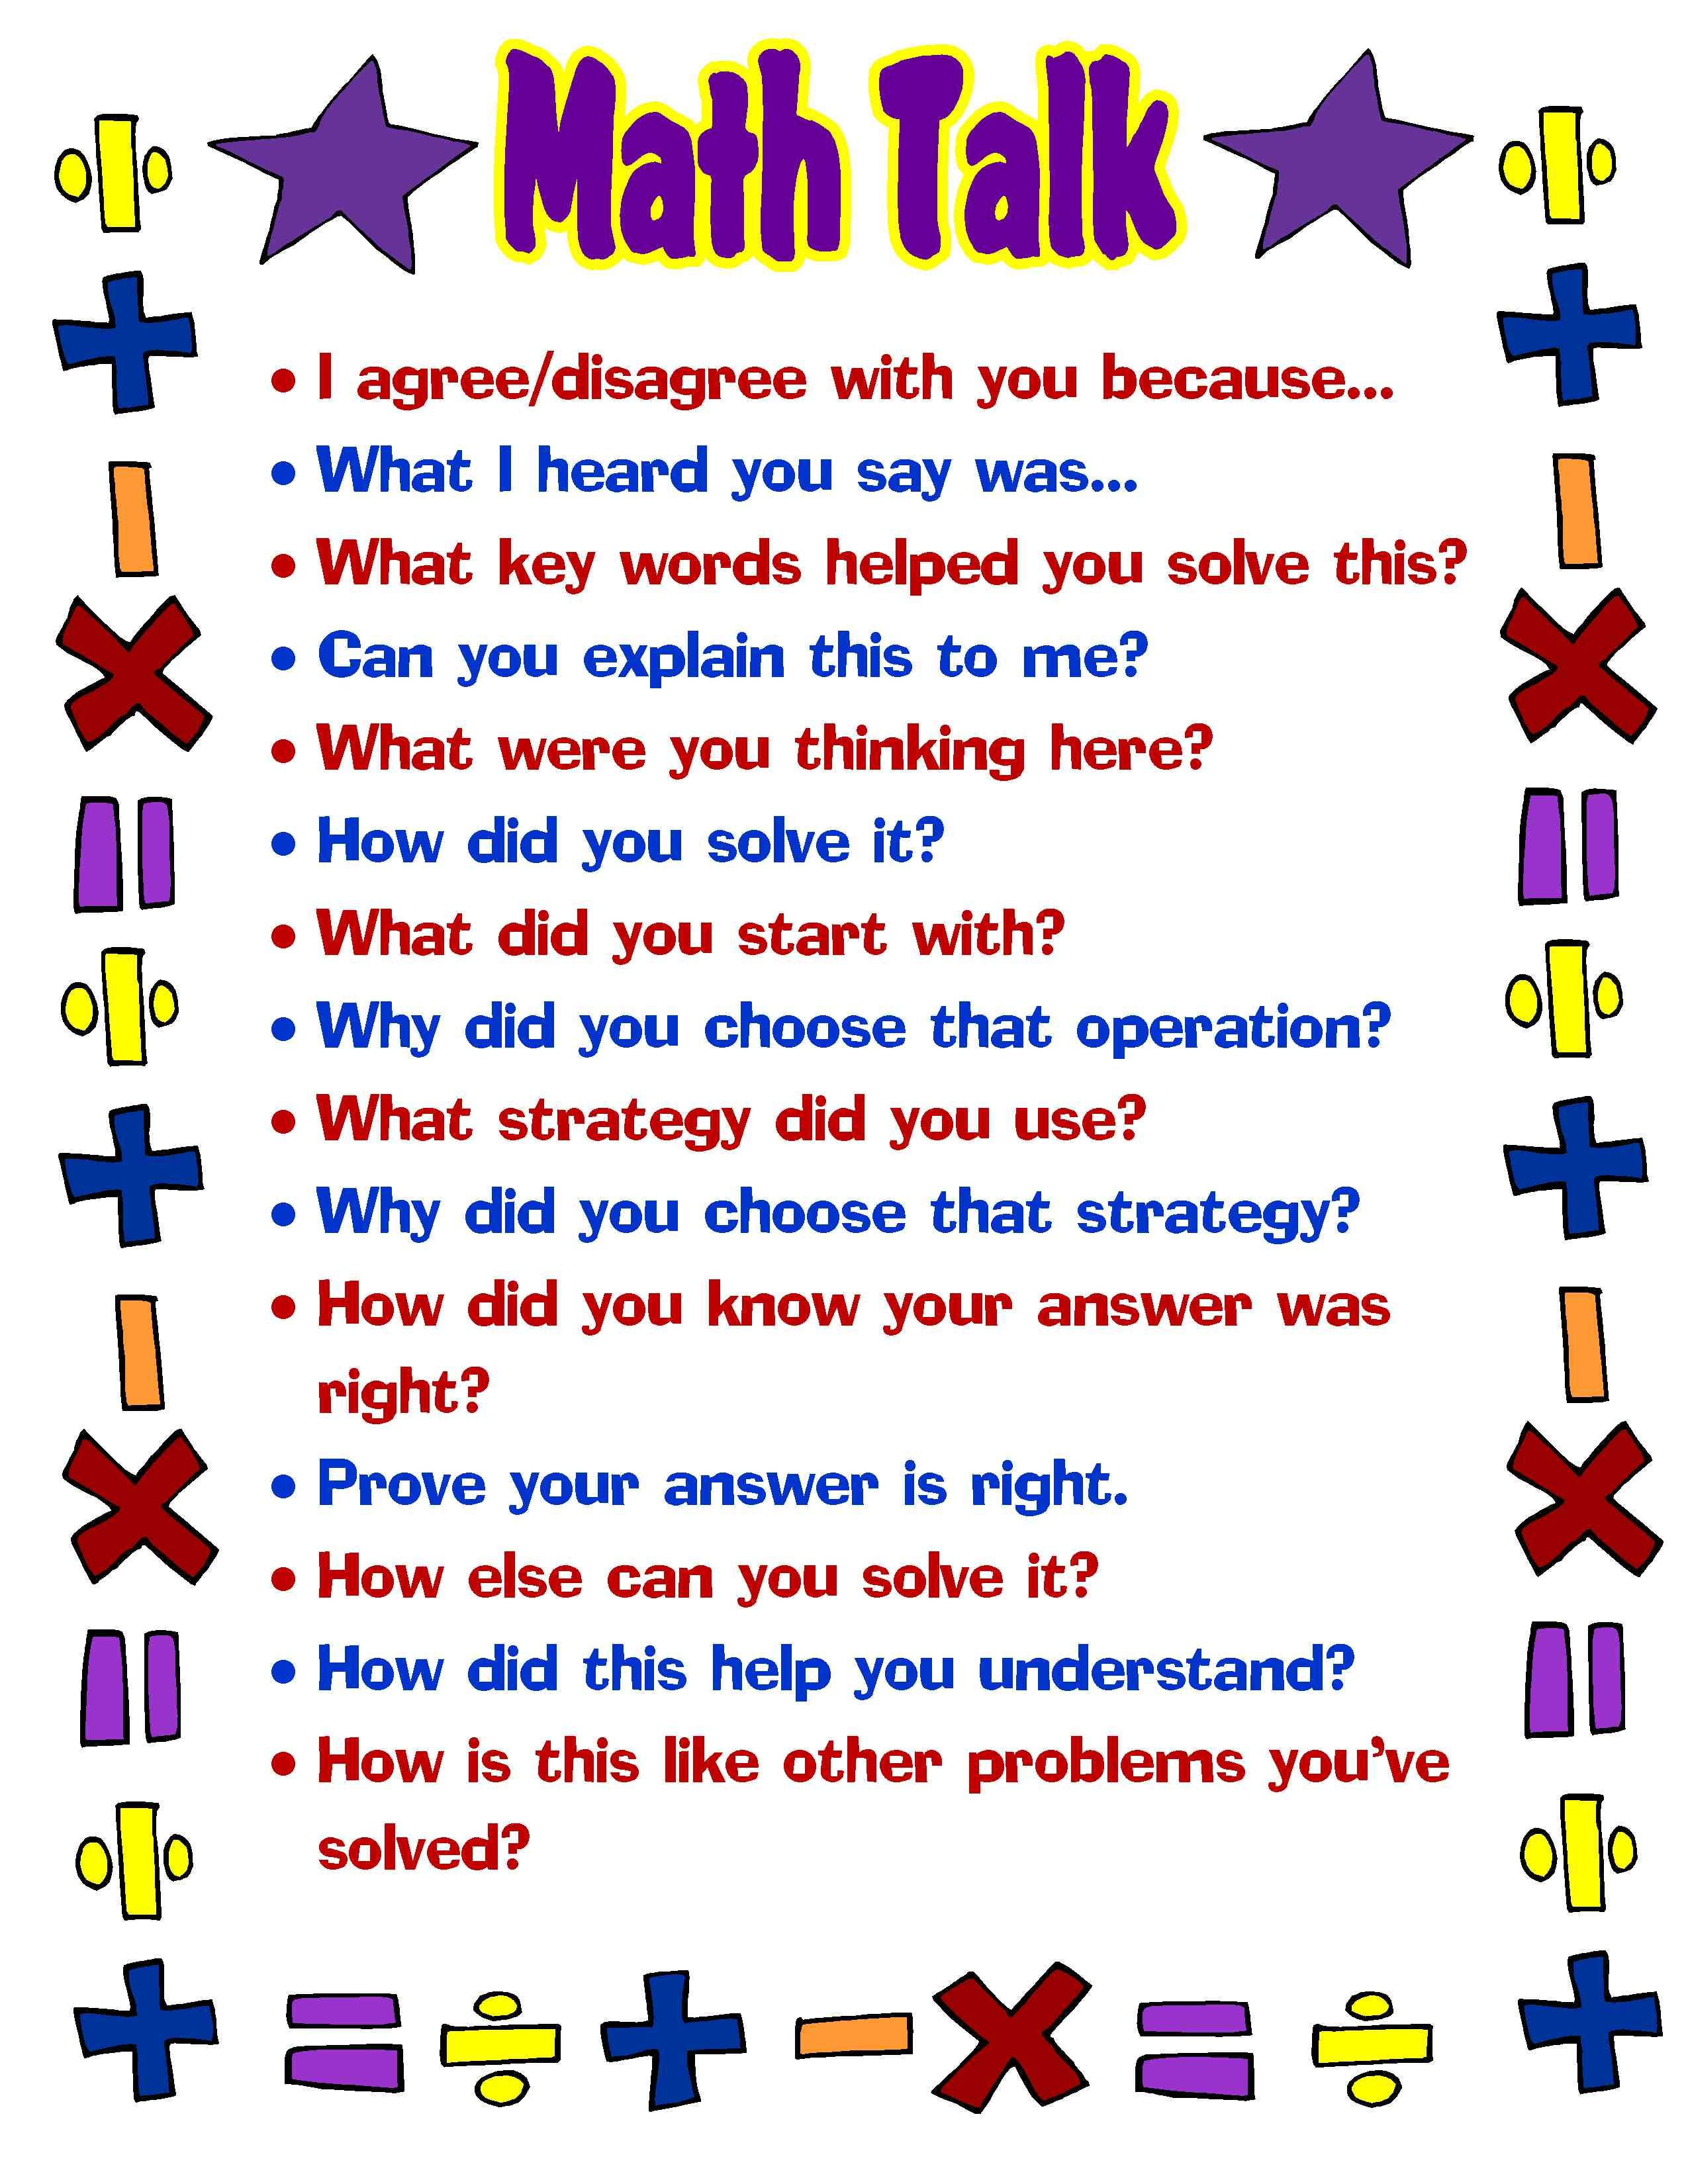 free printable math talk poster great for students and teachers rh pinterest com Free Classroom Posters for Math Printable Math Posters for Teachers